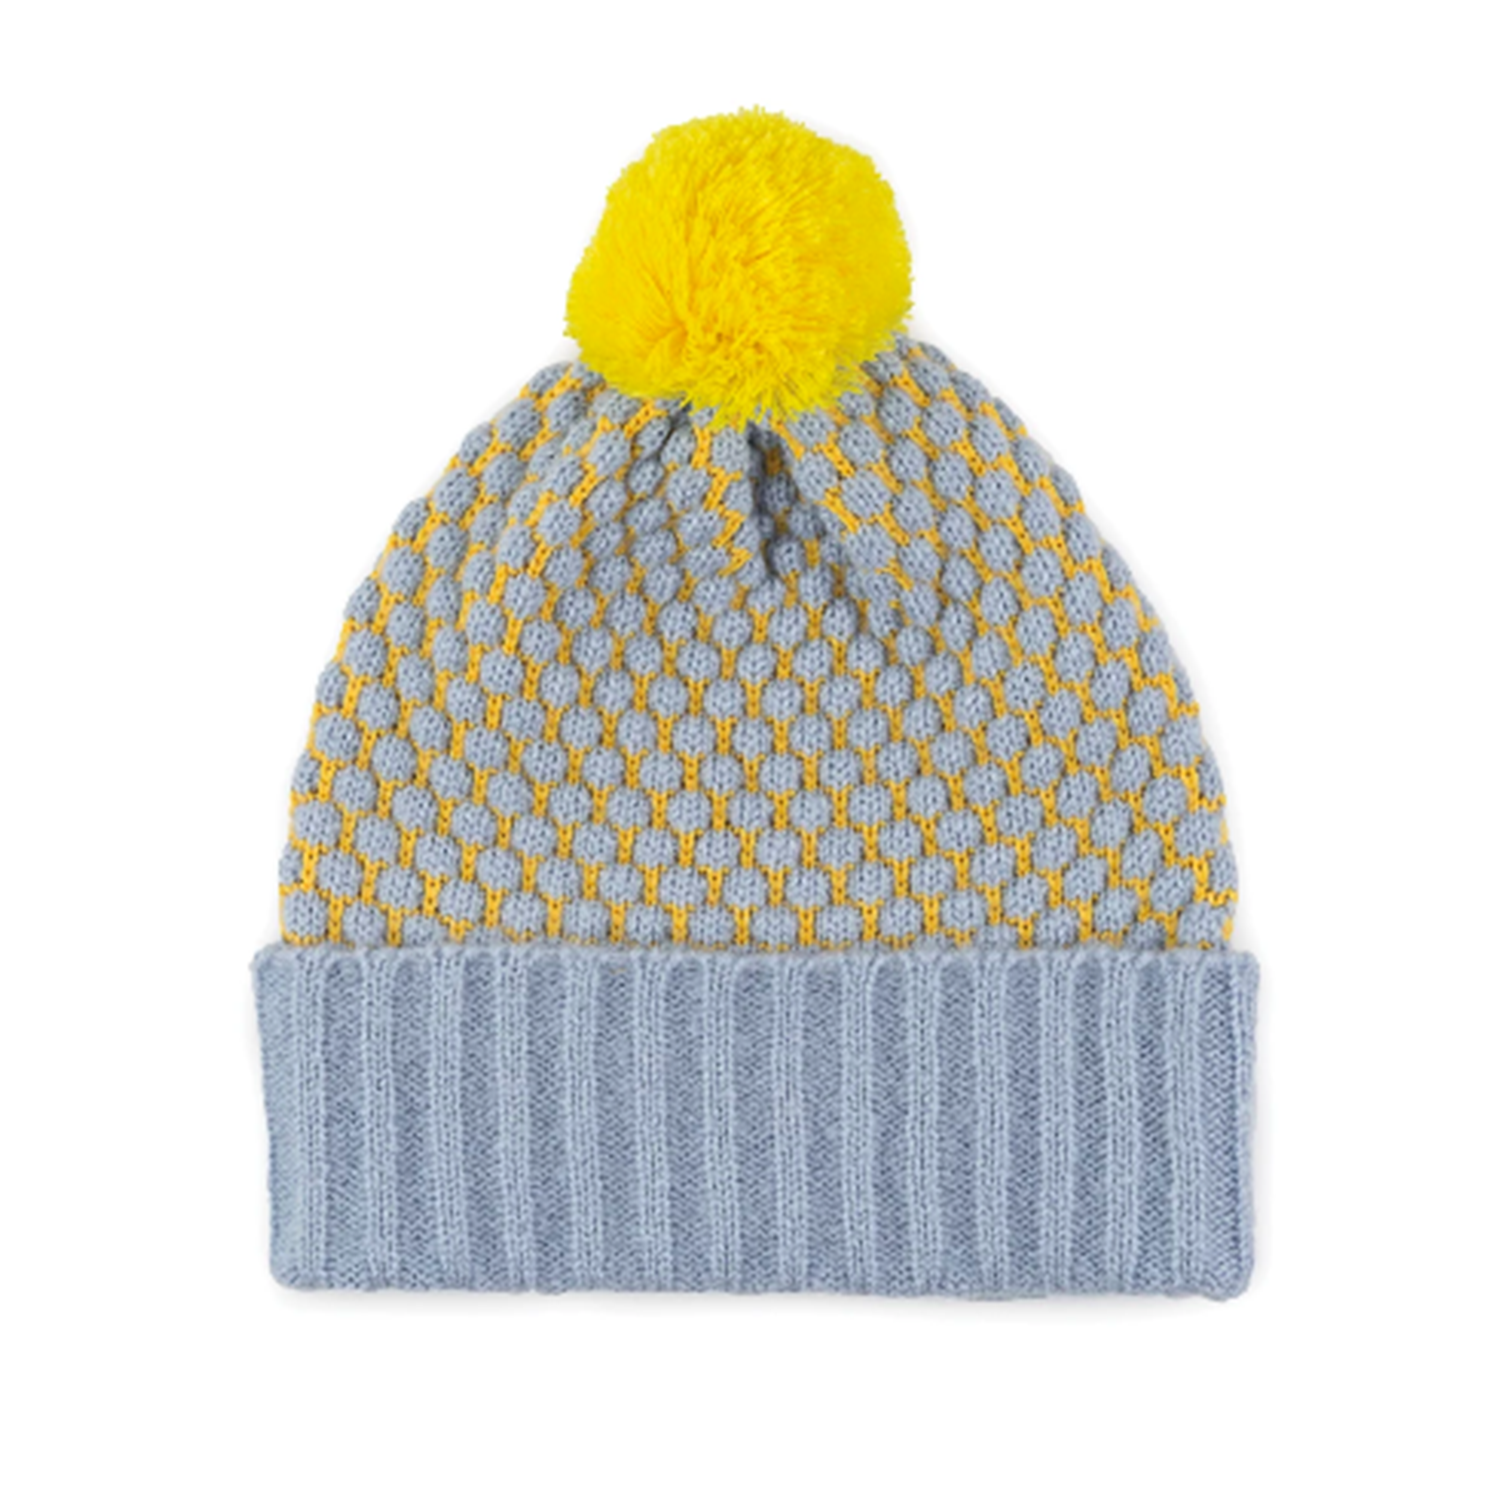 Bobble Hat- stone blue and yellow